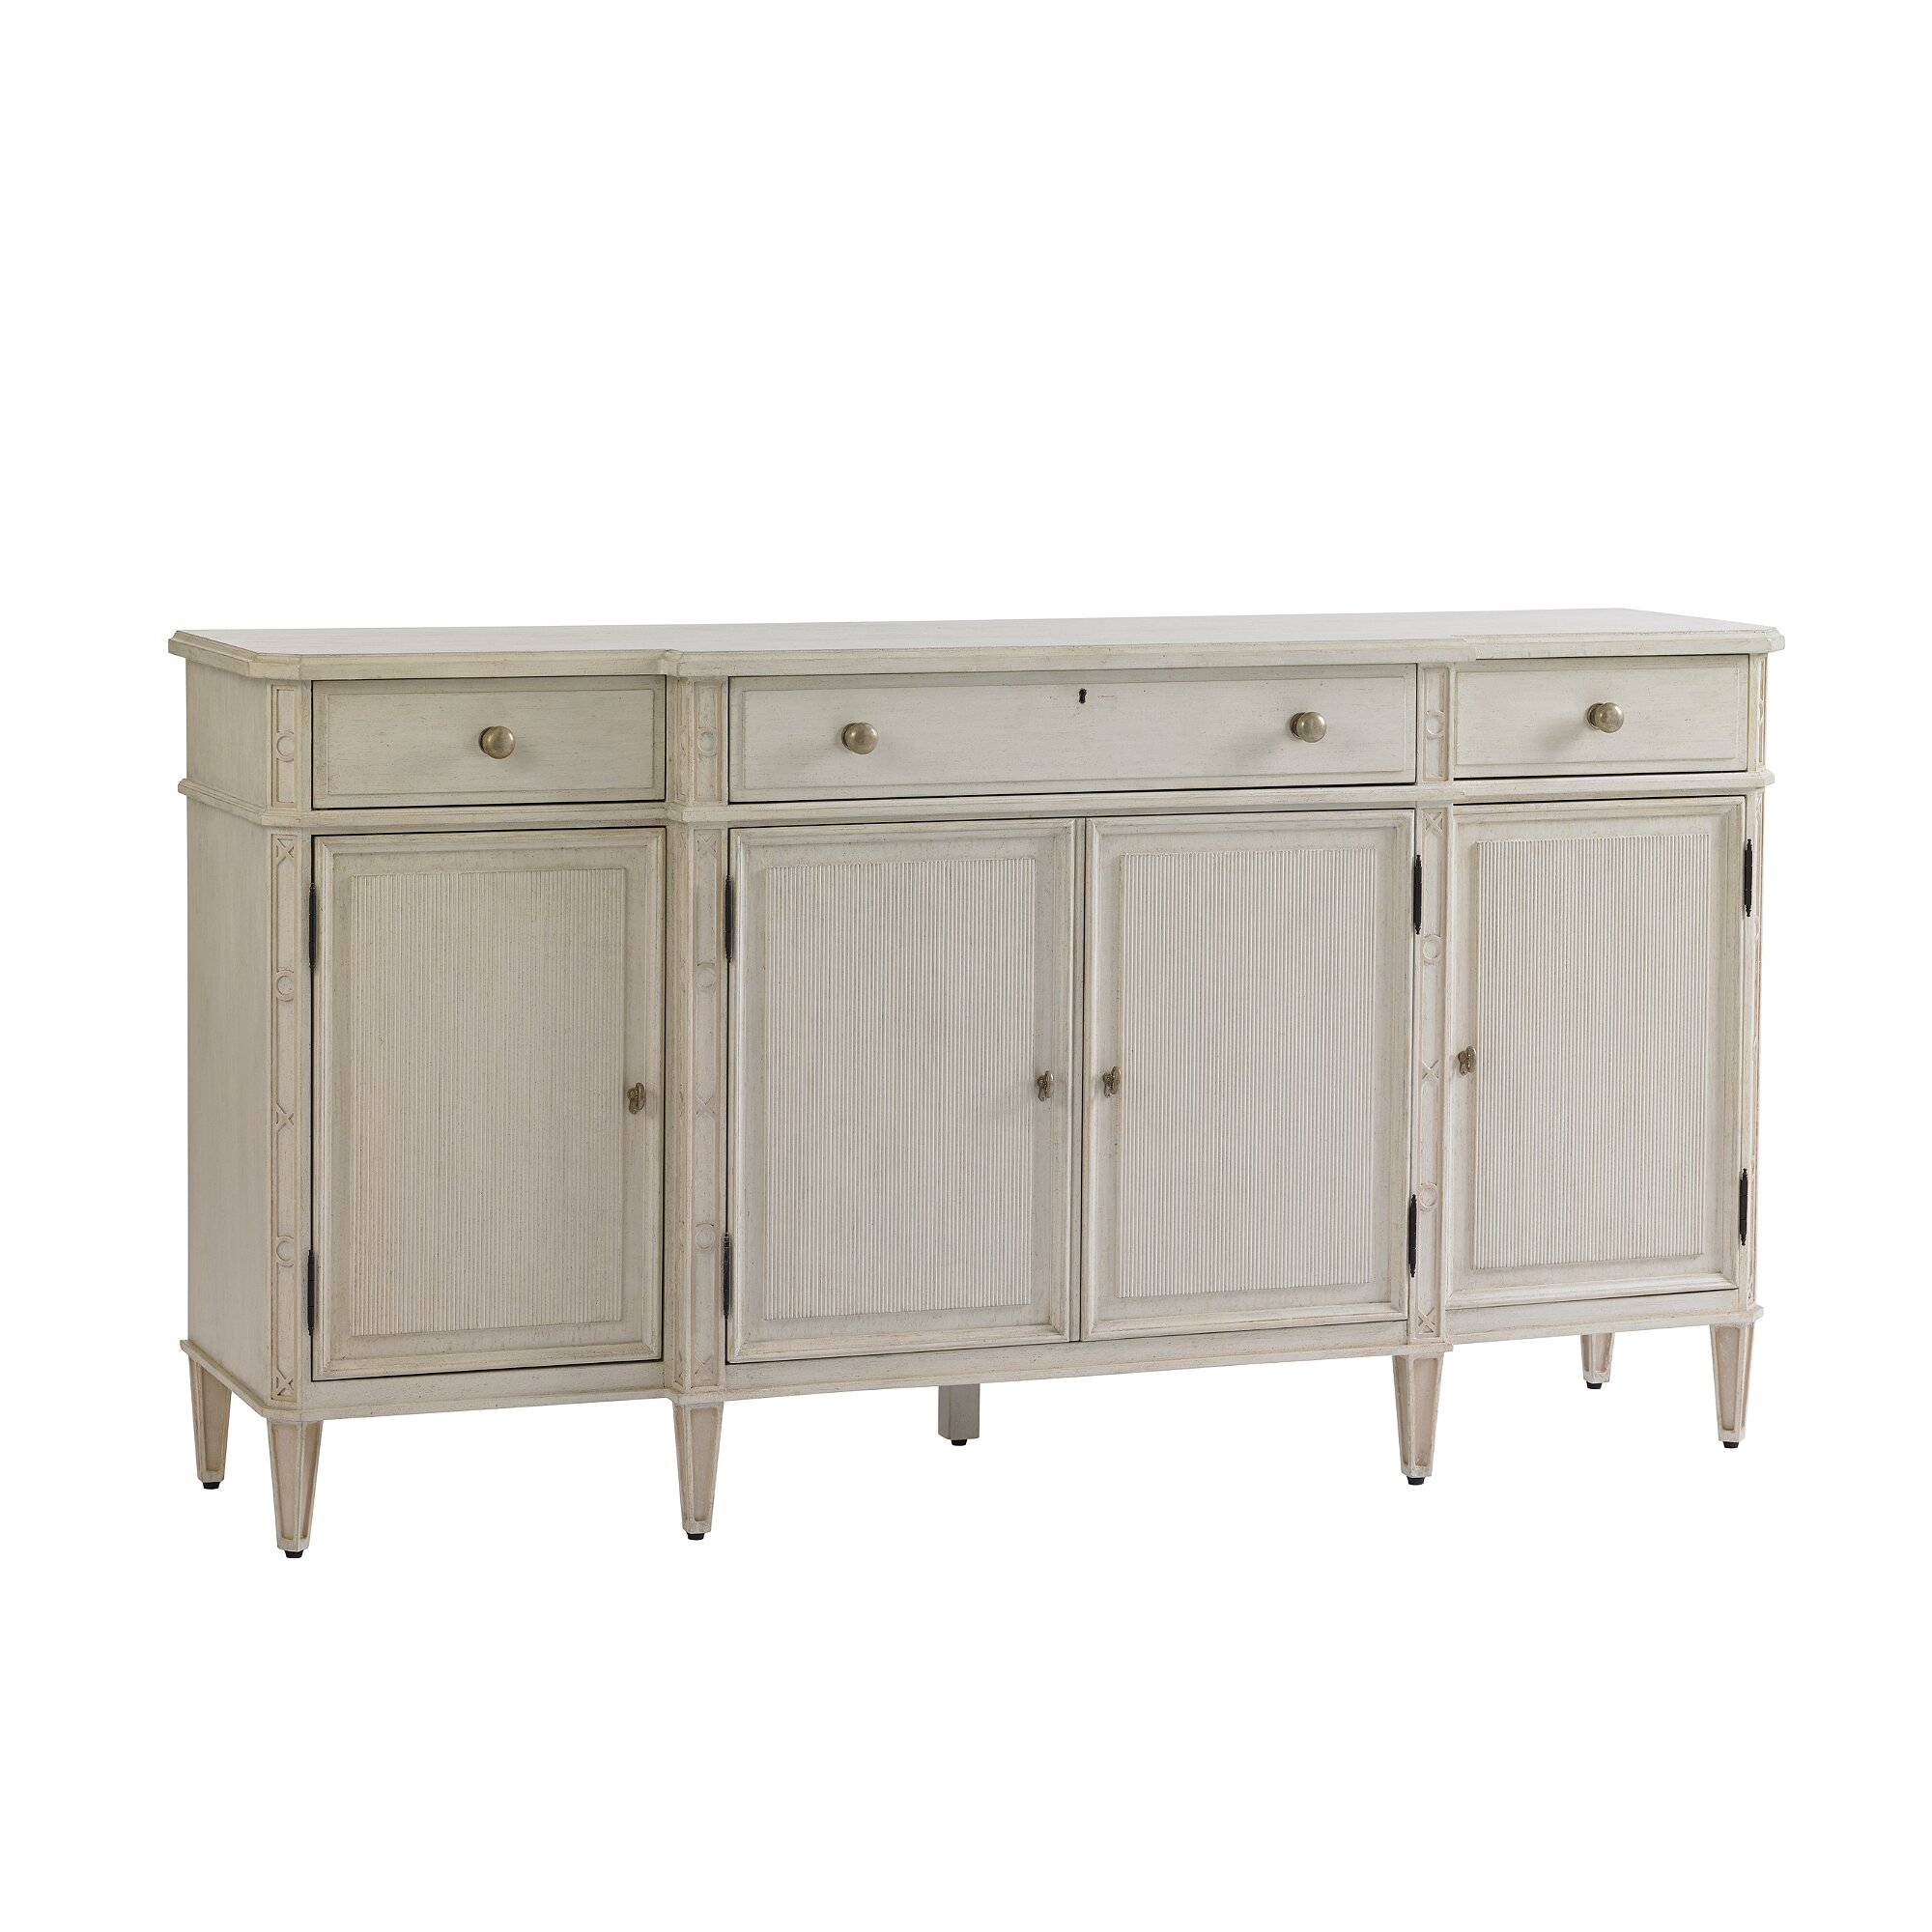 Stanley preserve brighton buffet with 4 doors reviews for Stanley furniture